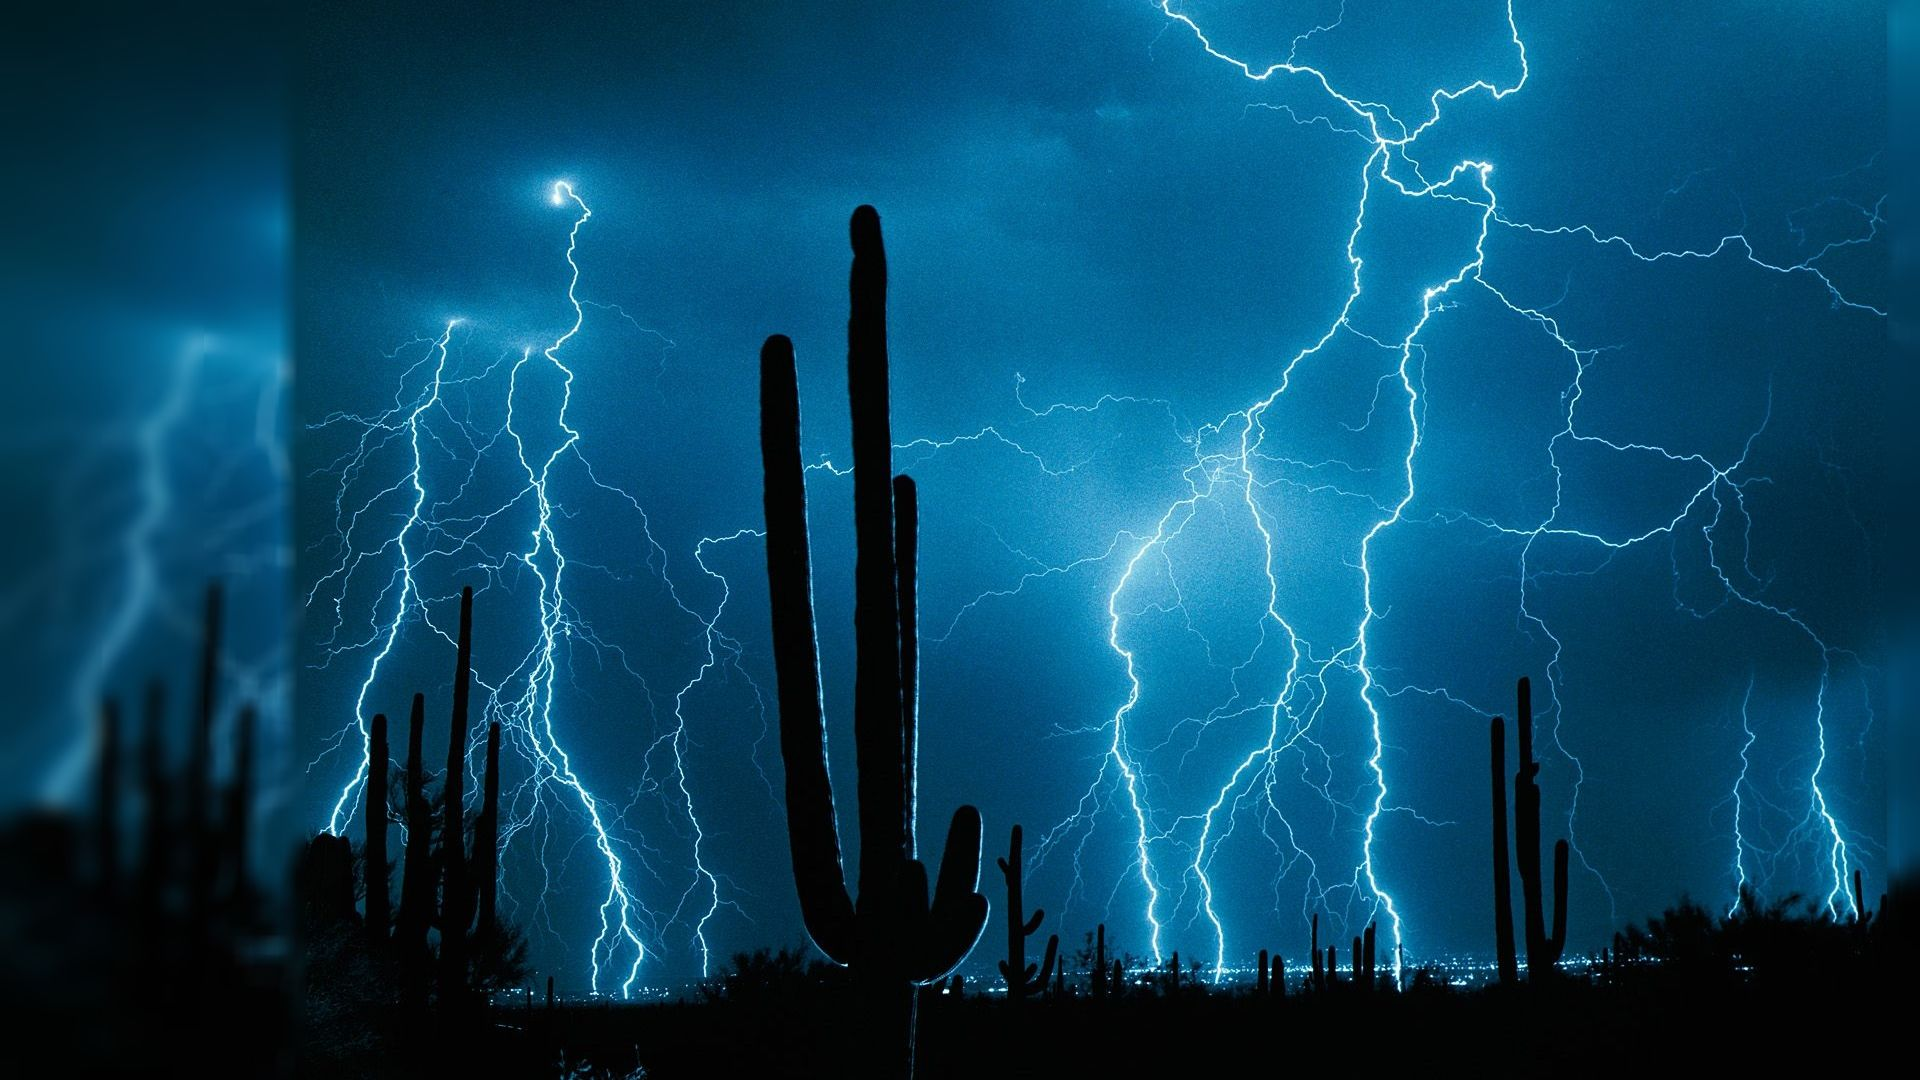 Natural Disasters Wallpapers Hd Lightening Storm Over The Desert 40 Live Wallpapers In